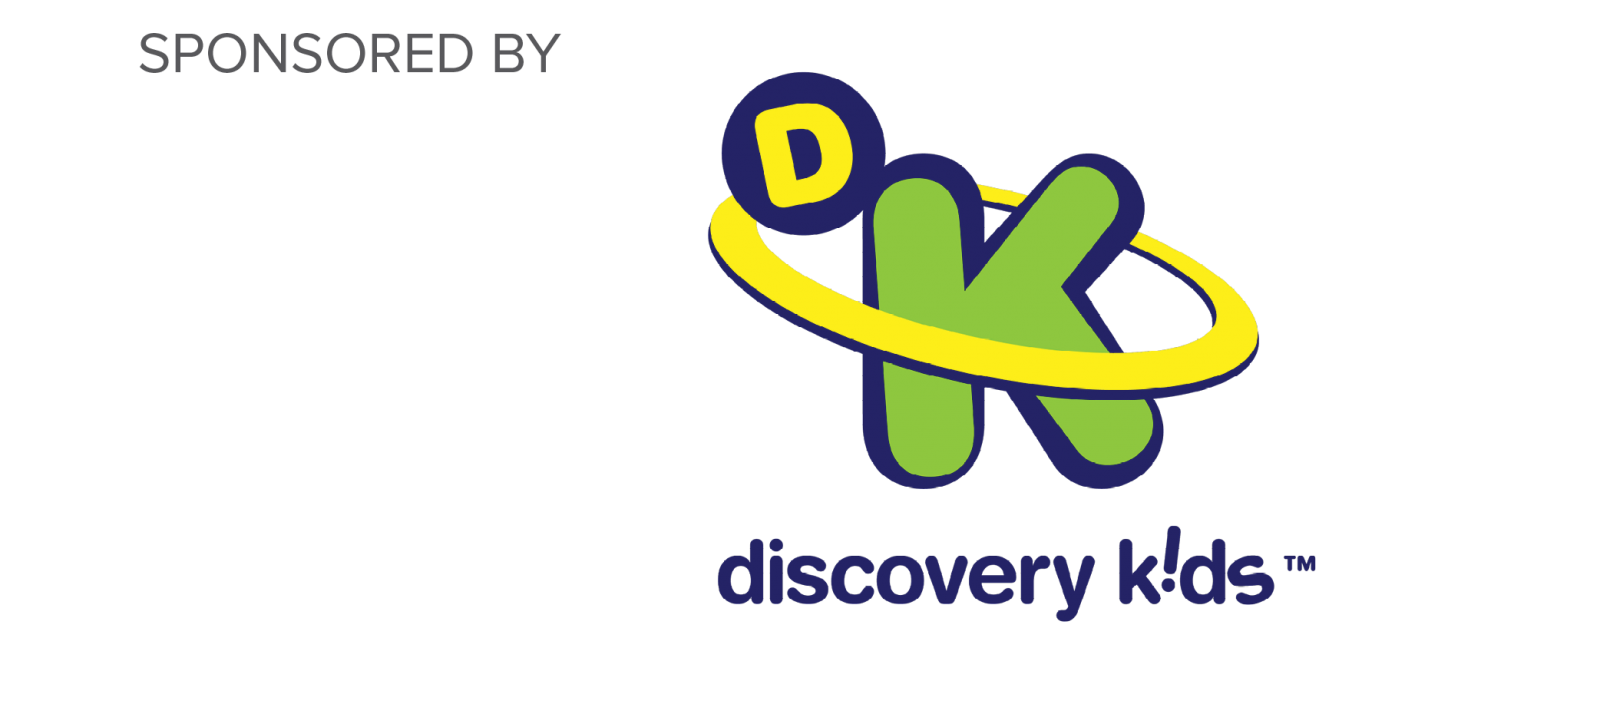 Sponsored by Discovery Kids